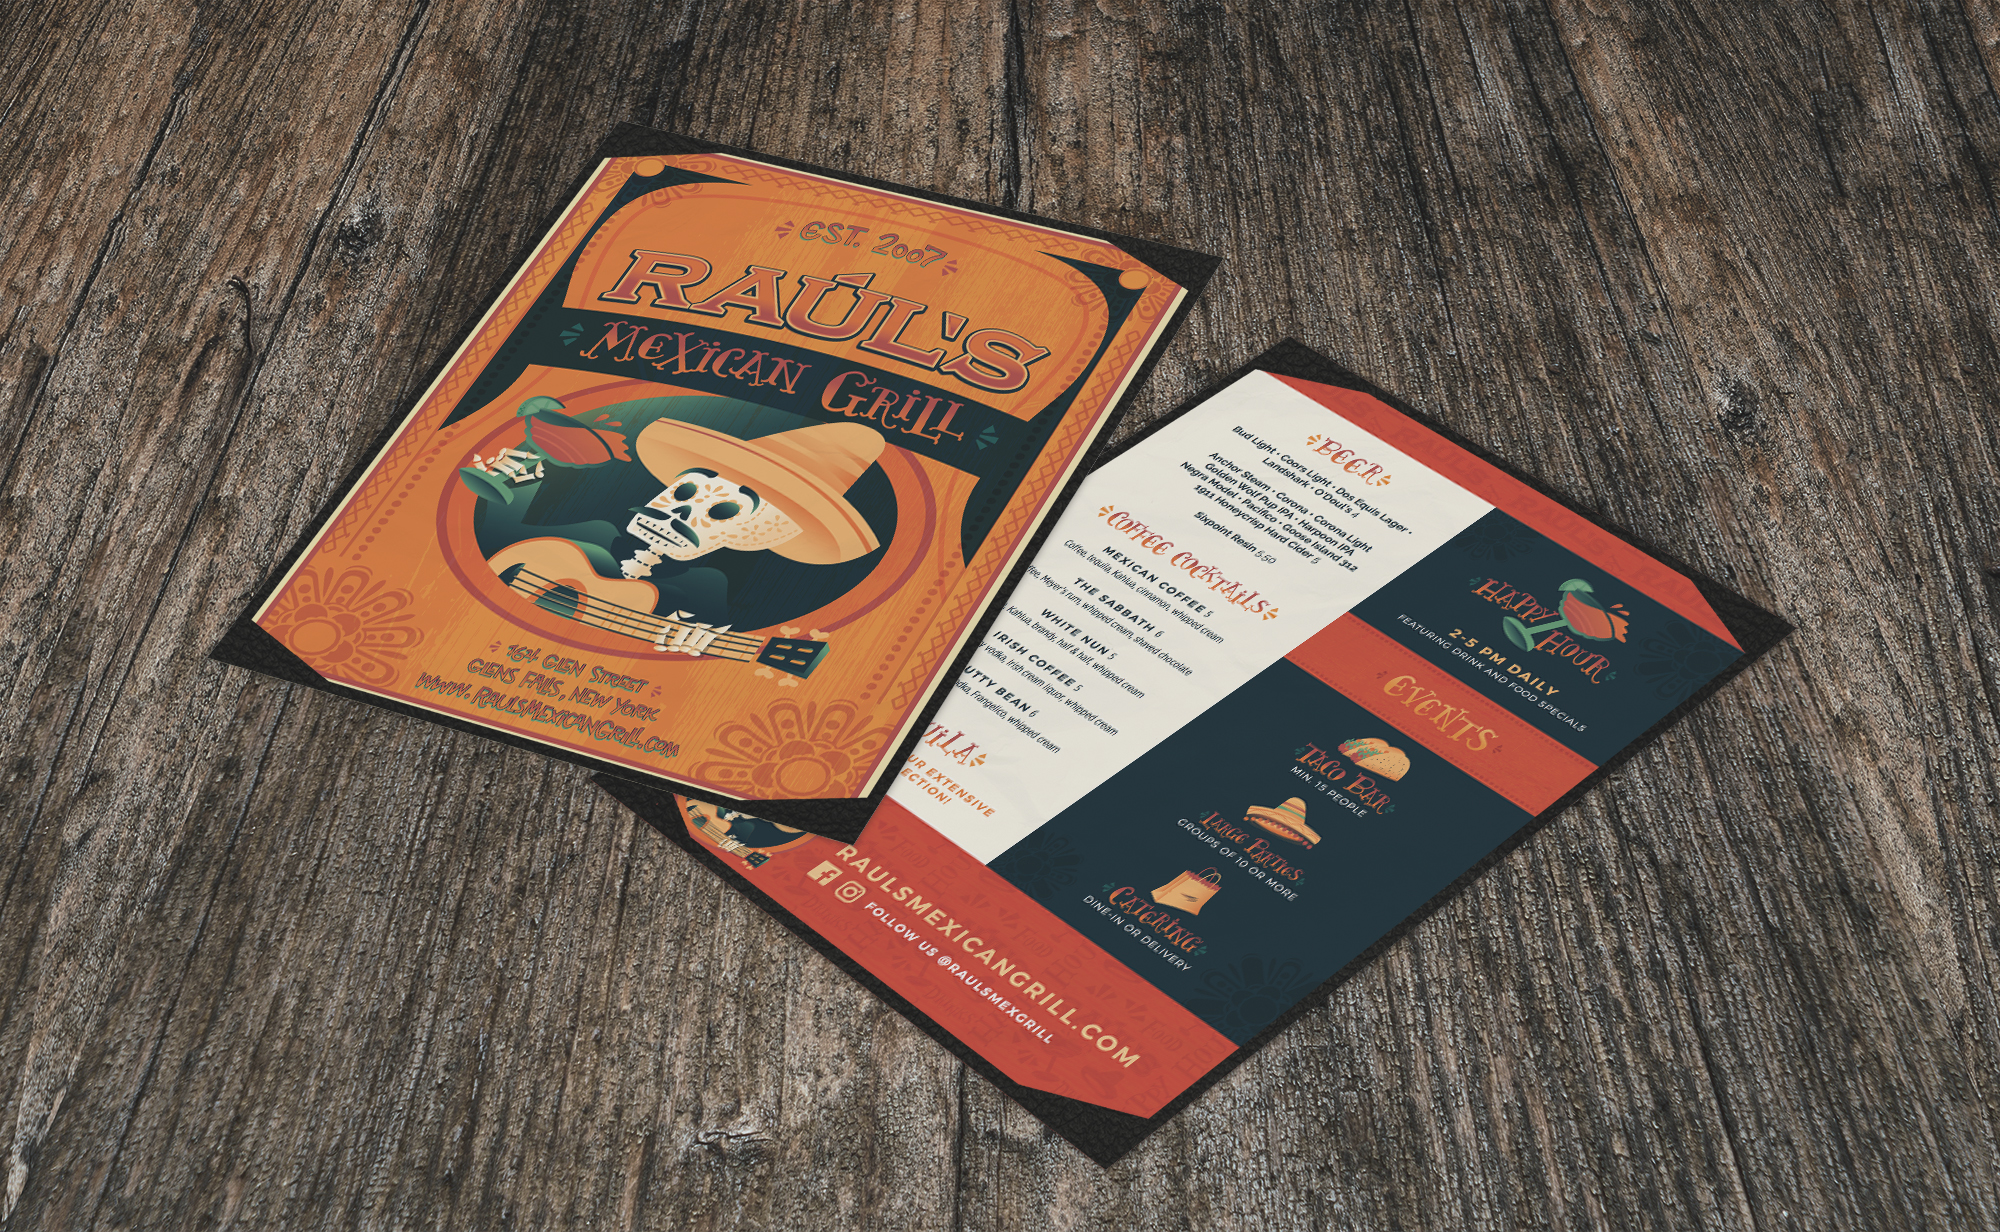 Menu Design - After completing the rebrand, we carried the custom type, illustration, iconography and color palette throughout the menu.